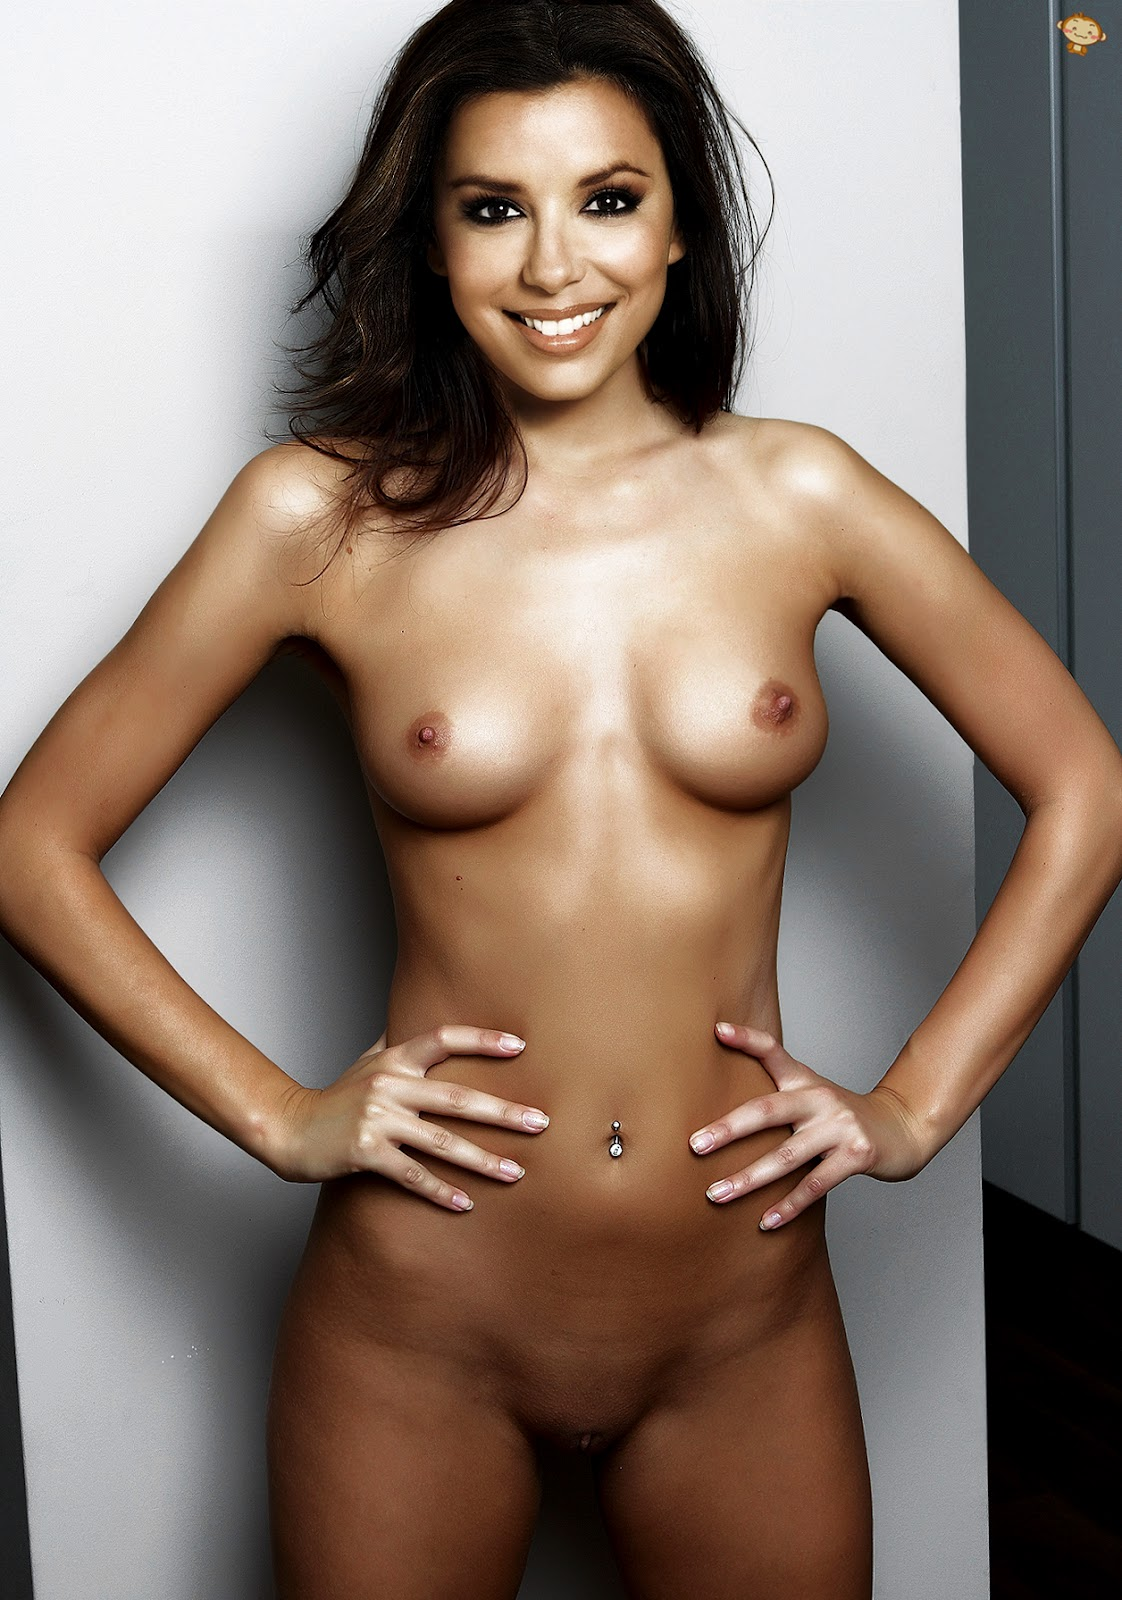 Eva longoria naked images — photo 4